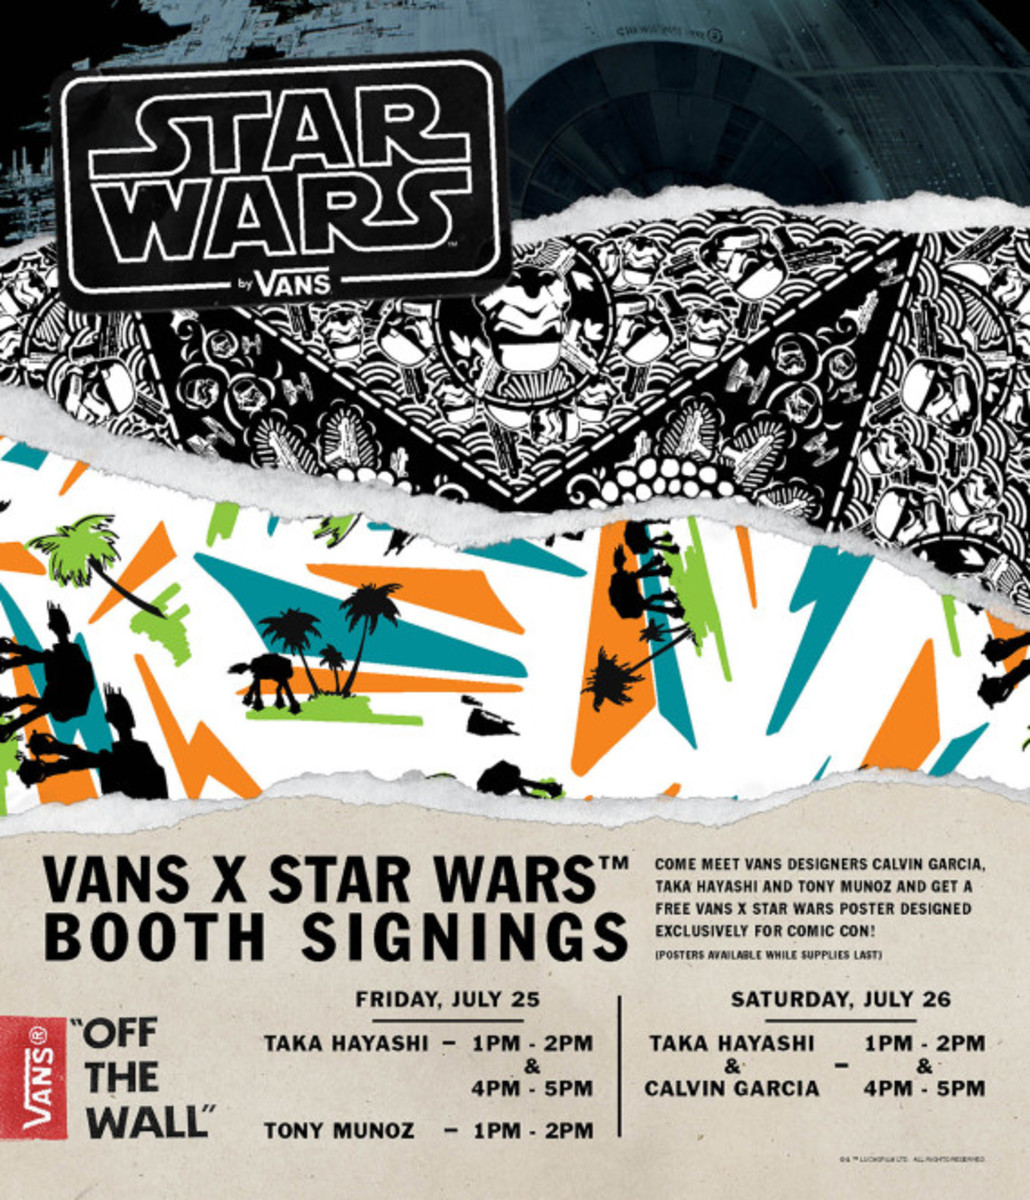 Star Wars x VANS - Limited Edition Posters for Comic-Con International: San Diego 2014 - 1